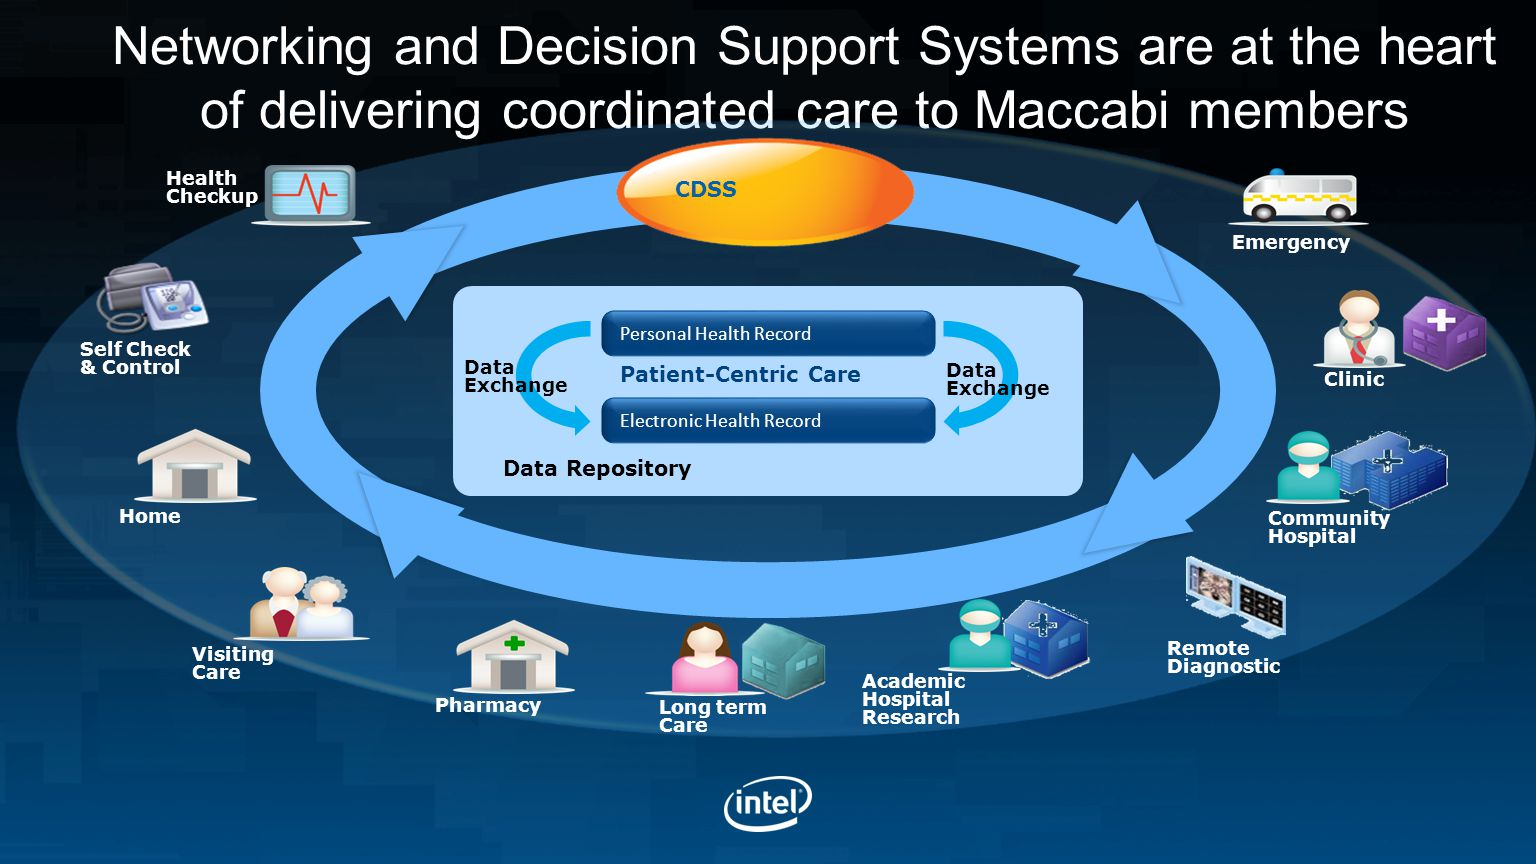 Networking and Decision Support Systems are at the heart of delivering coordinated care to Maccabi members